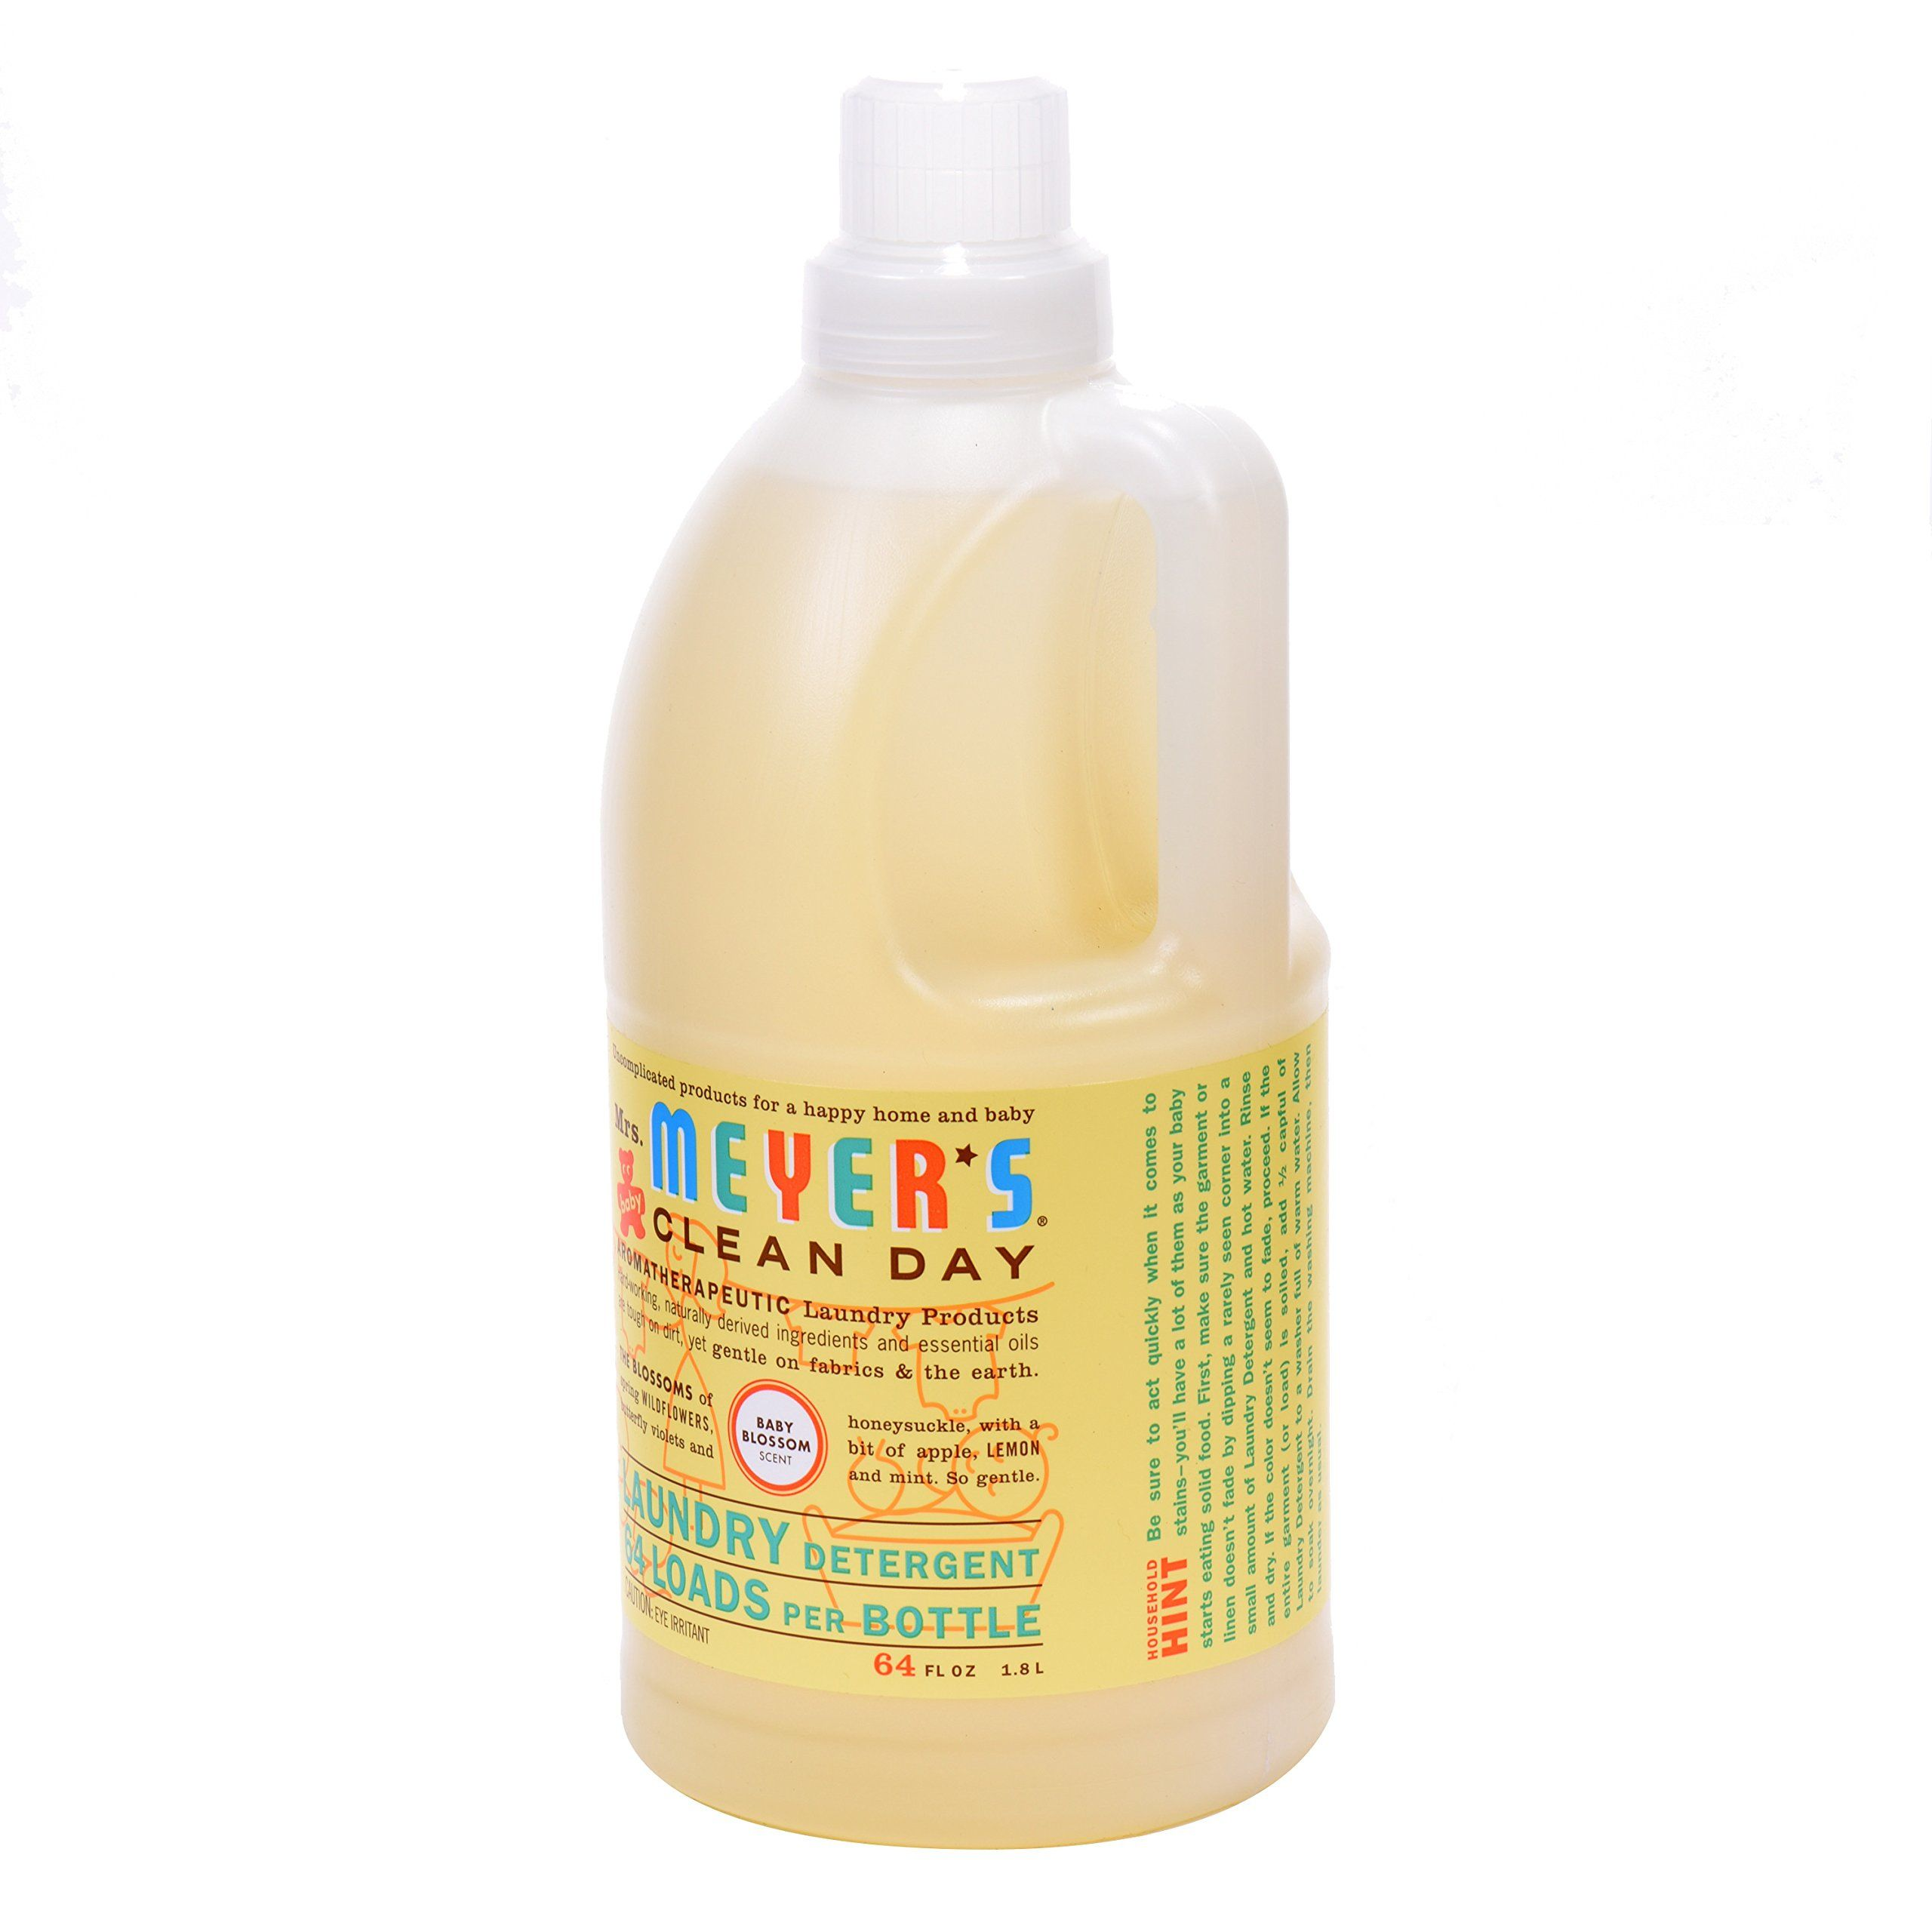 Mrs Meyers Clean Day Laundry Detergent Concentrated Baby Blossom